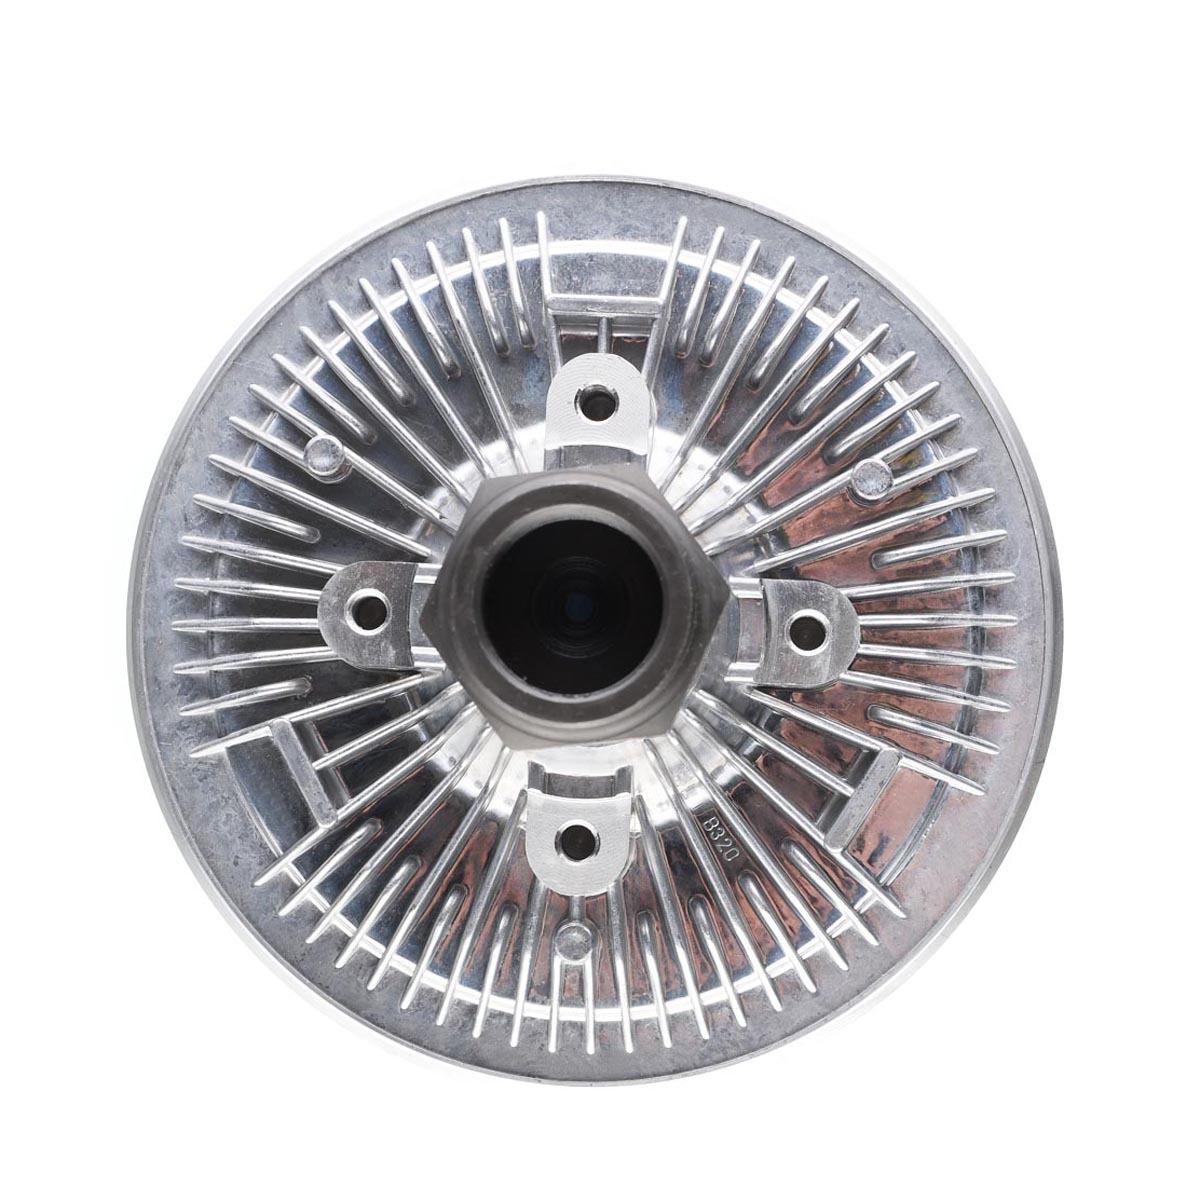 small resolution of cooling fan clutch for ford excursion f 250 f350 f750 super duty 7 3l turbo diesel 1999 2003 2837 22611 f81z8a616 da f81z8a616da in fans kits from